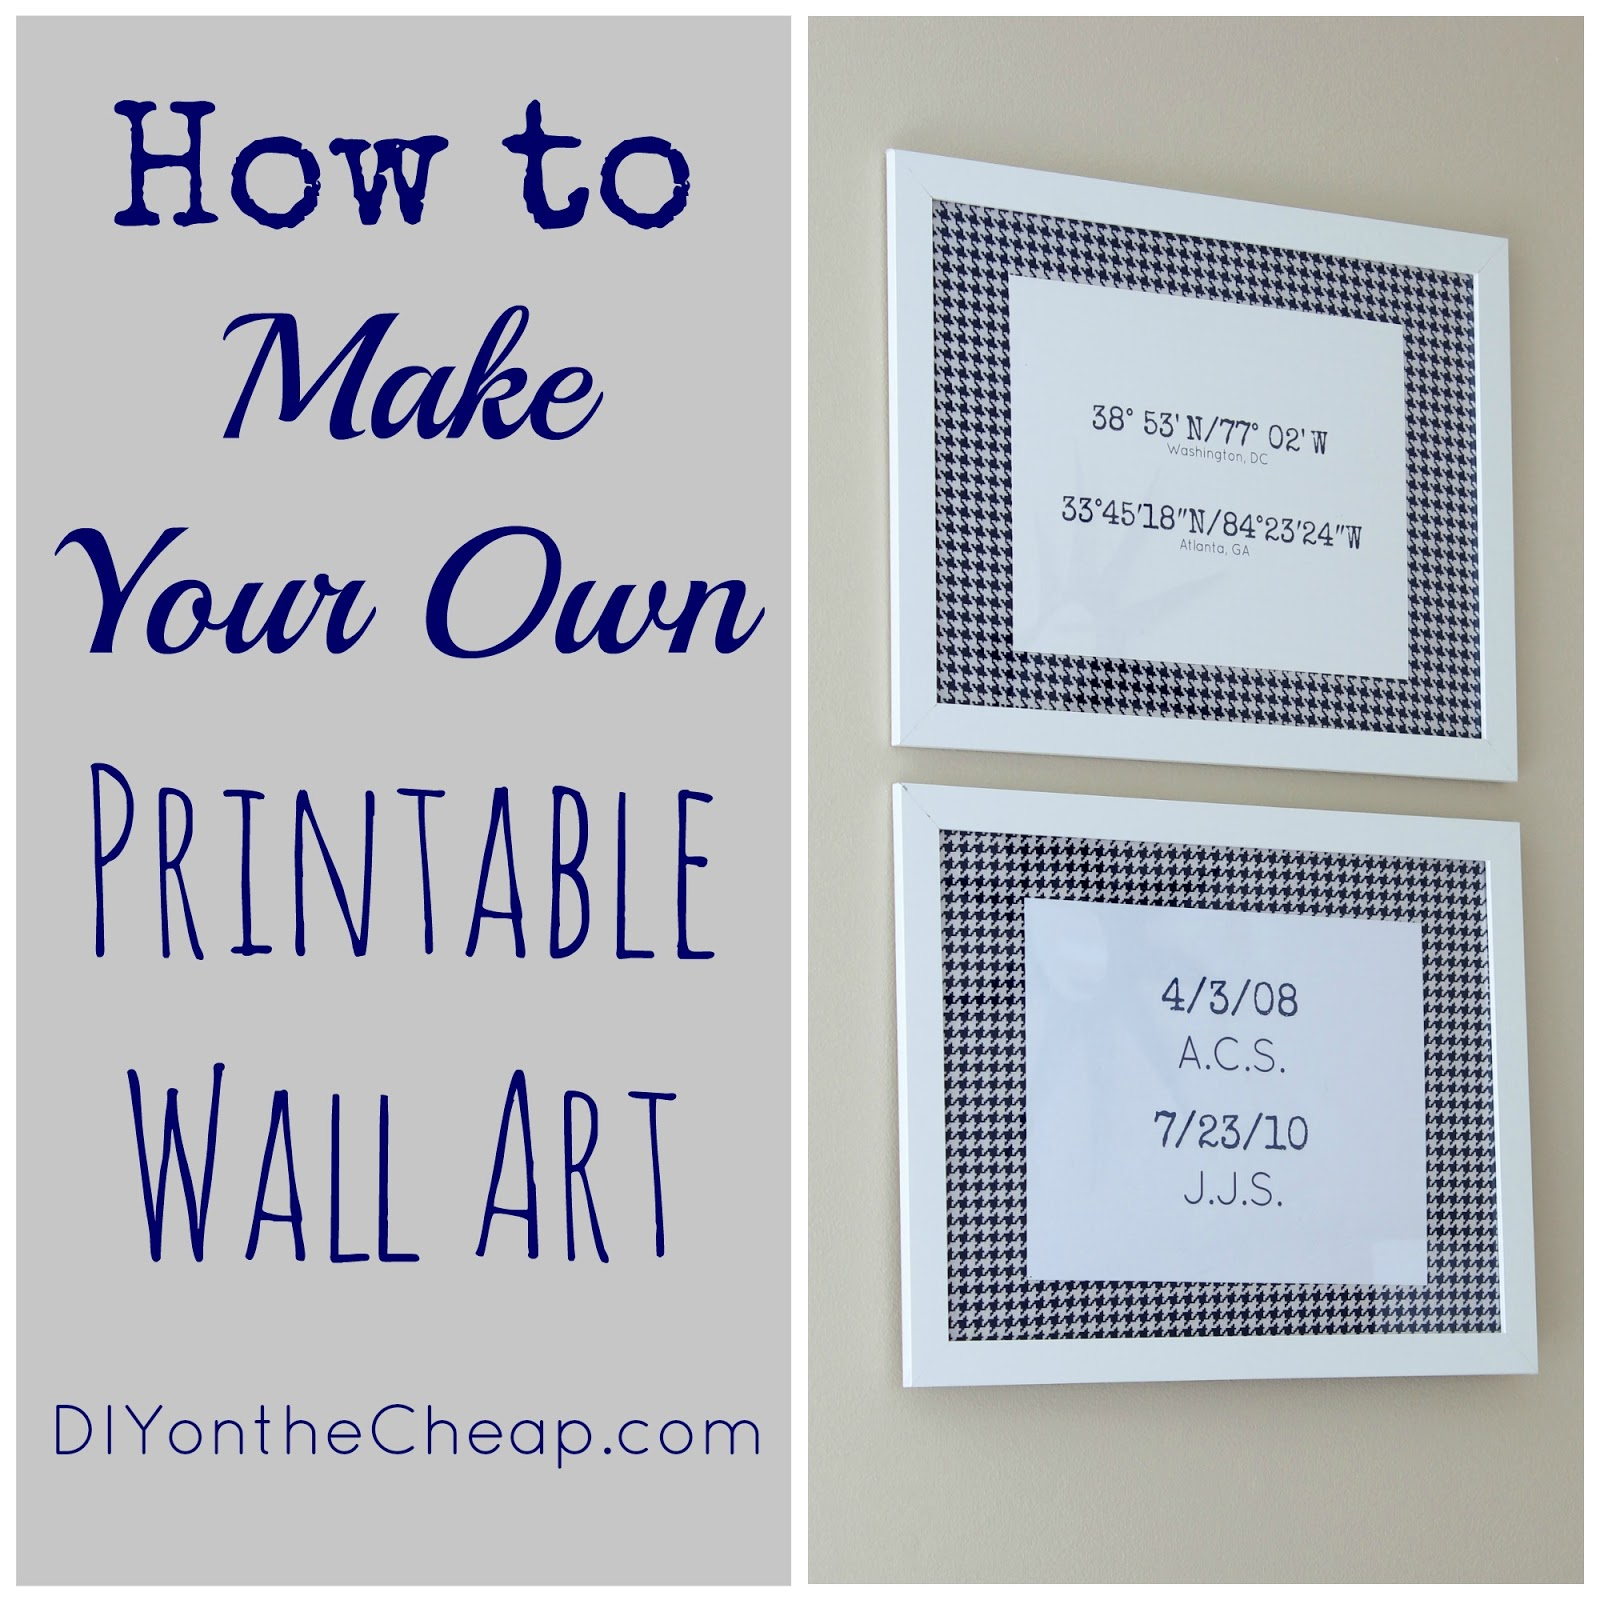 How To Make Your Own Printable Wall Art - Erin Spain - Free Printable Artwork